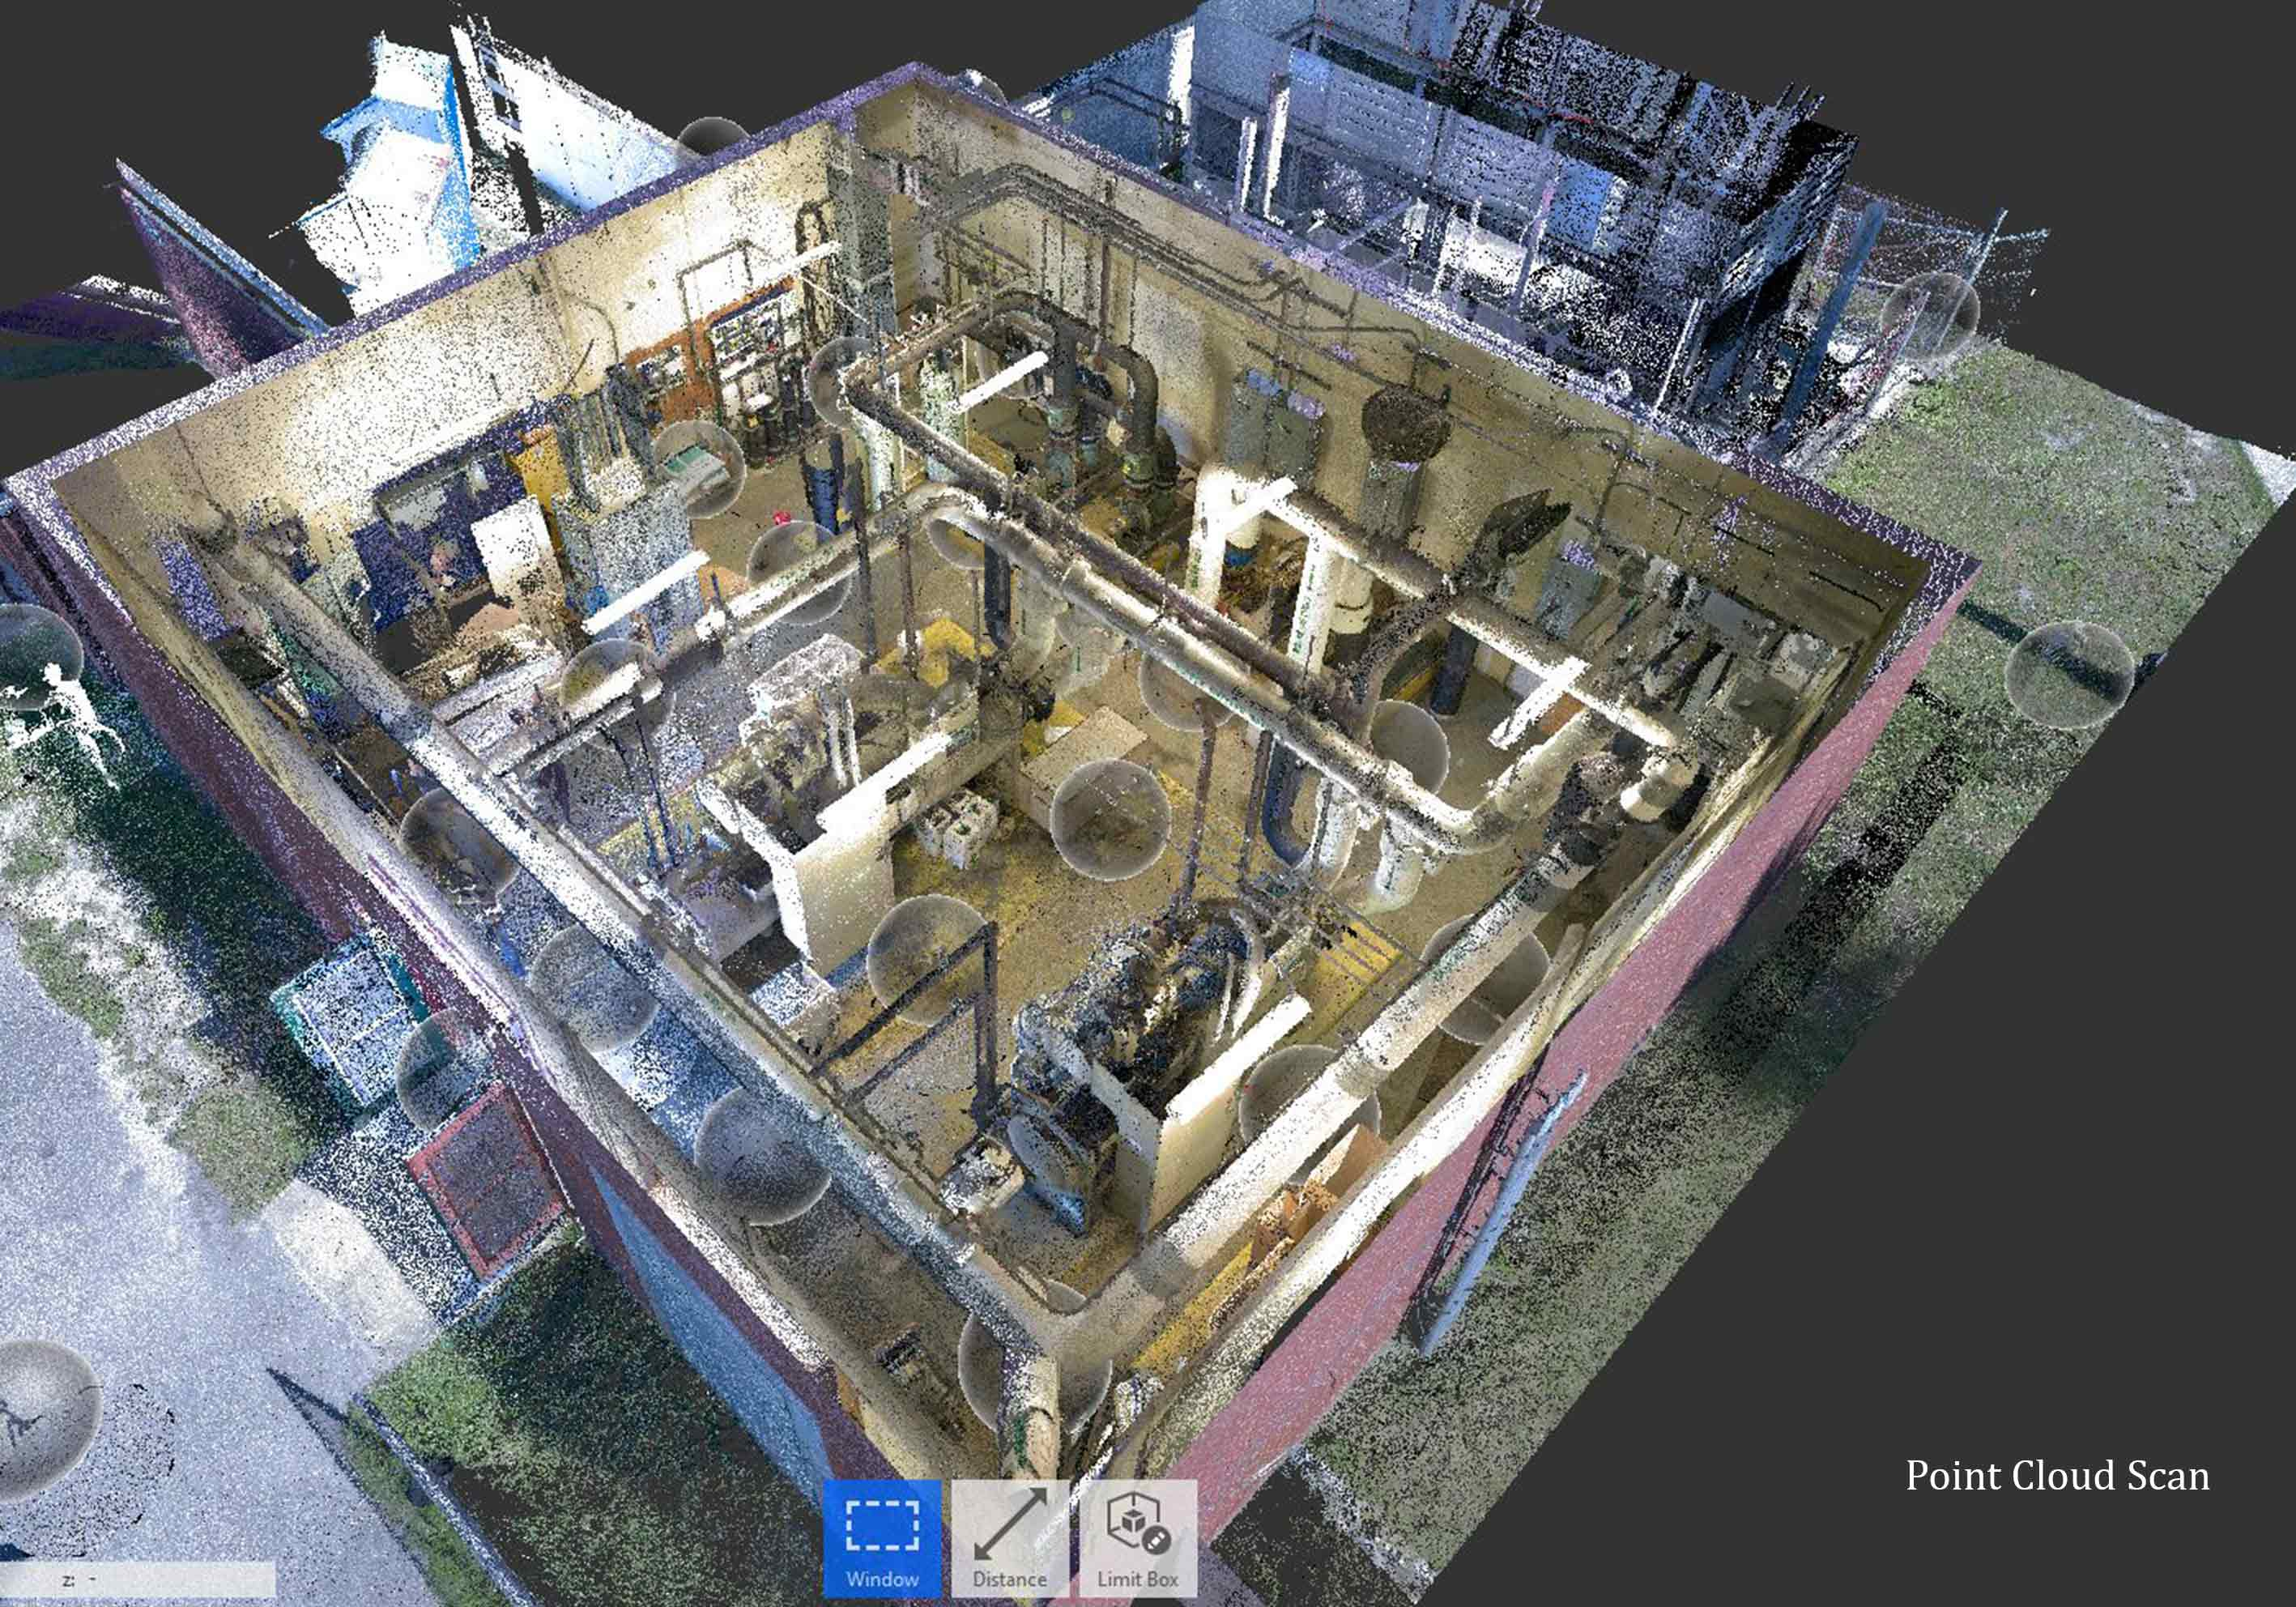 Point Cloud Scan of Mechanical Room